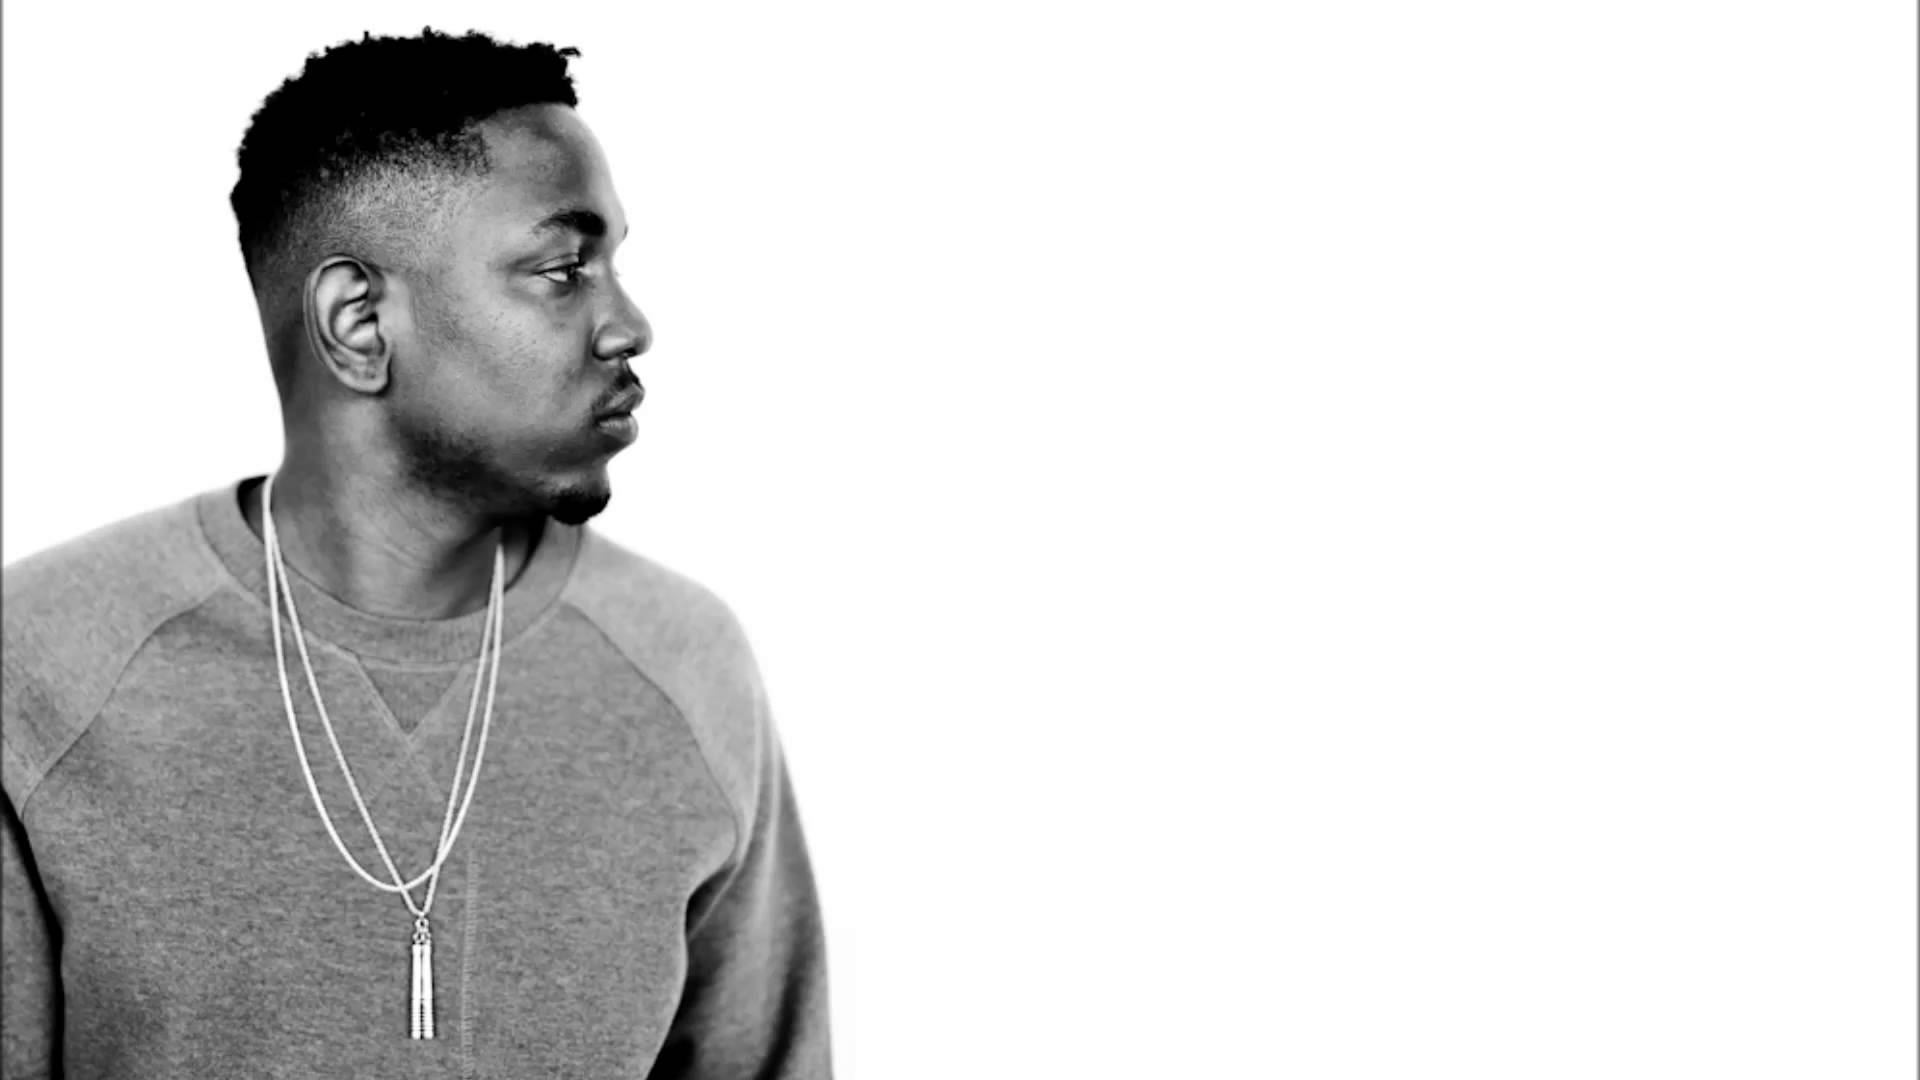 ... High School in North Bergen, N.J., about 40 students are crammed into a small classroom, anxiously waiting for Kendrick Lamar to walk into the room.